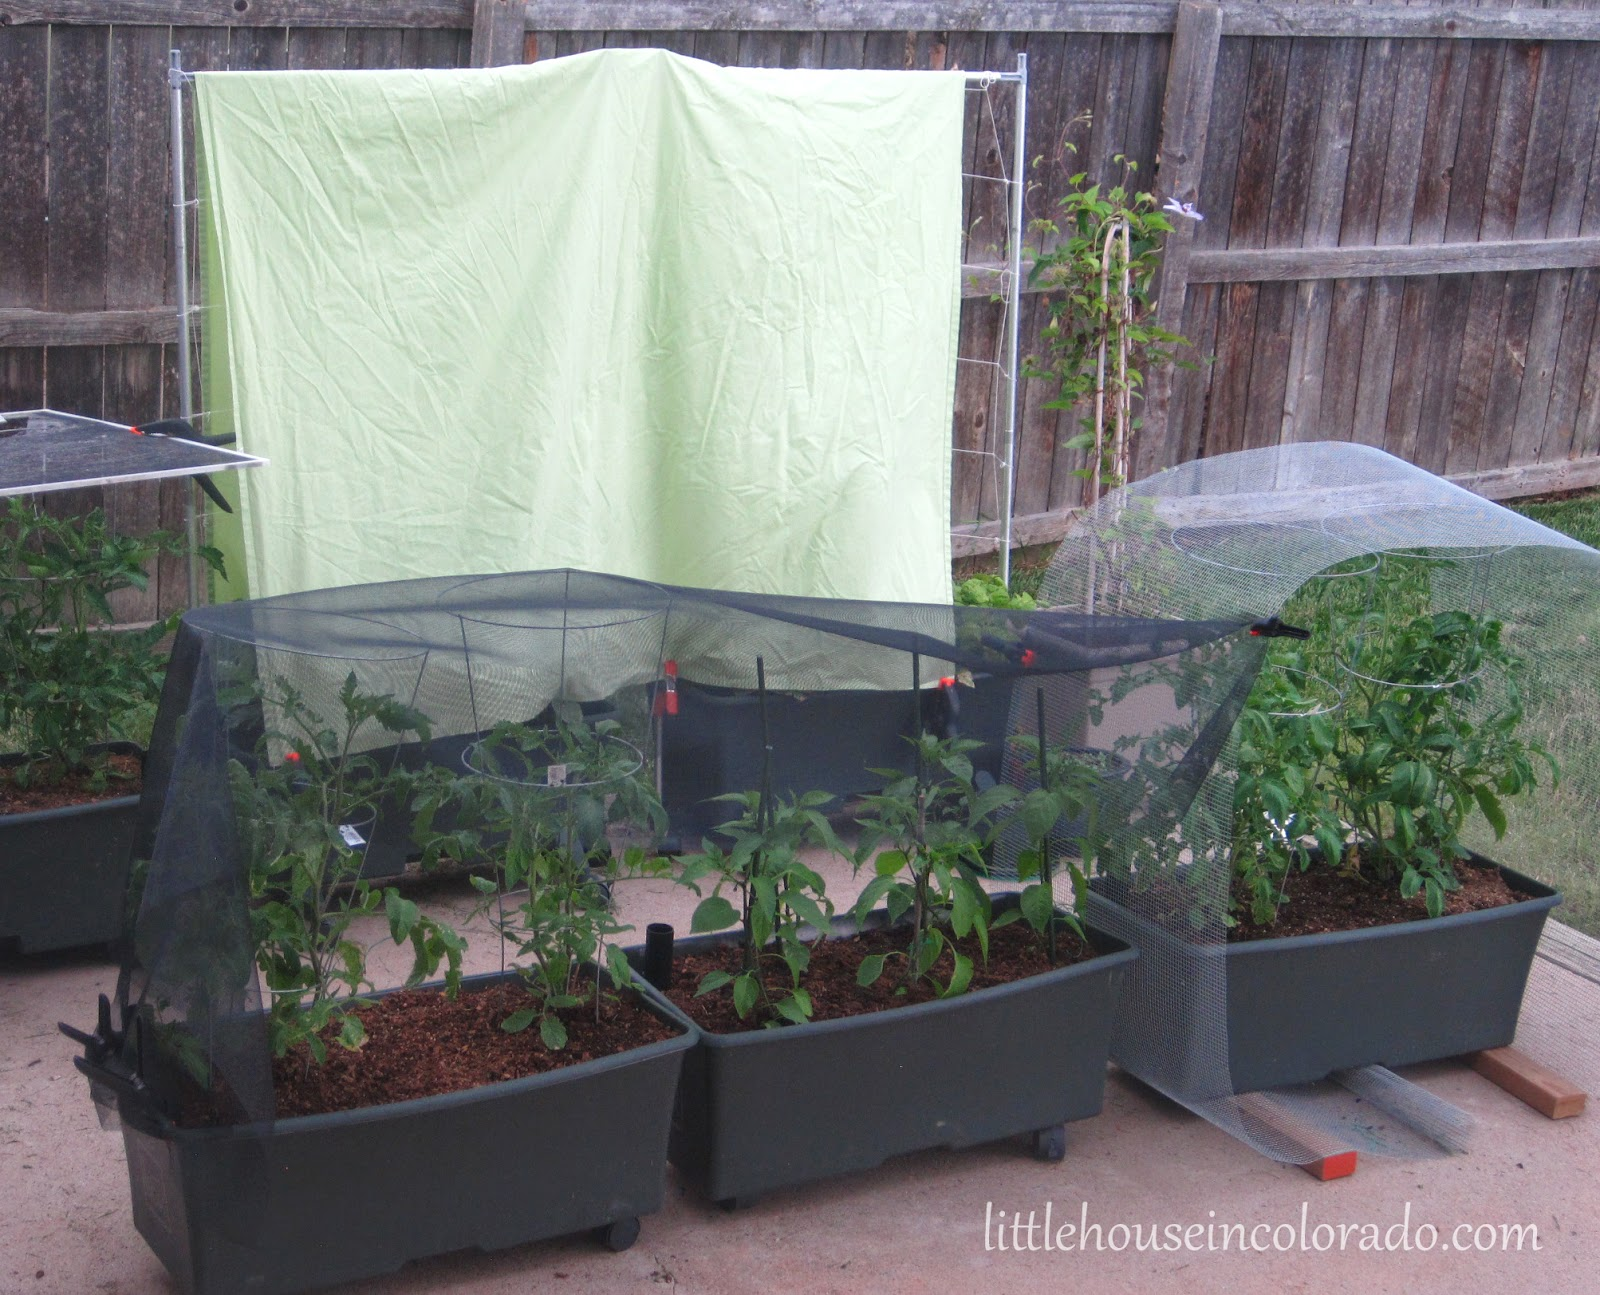 We Had Old Screens Clamped To Tomato Cages Replacement Window Screening D Over More Tomatoes And Peppers A Bed Sheet Covering The Cubers 10